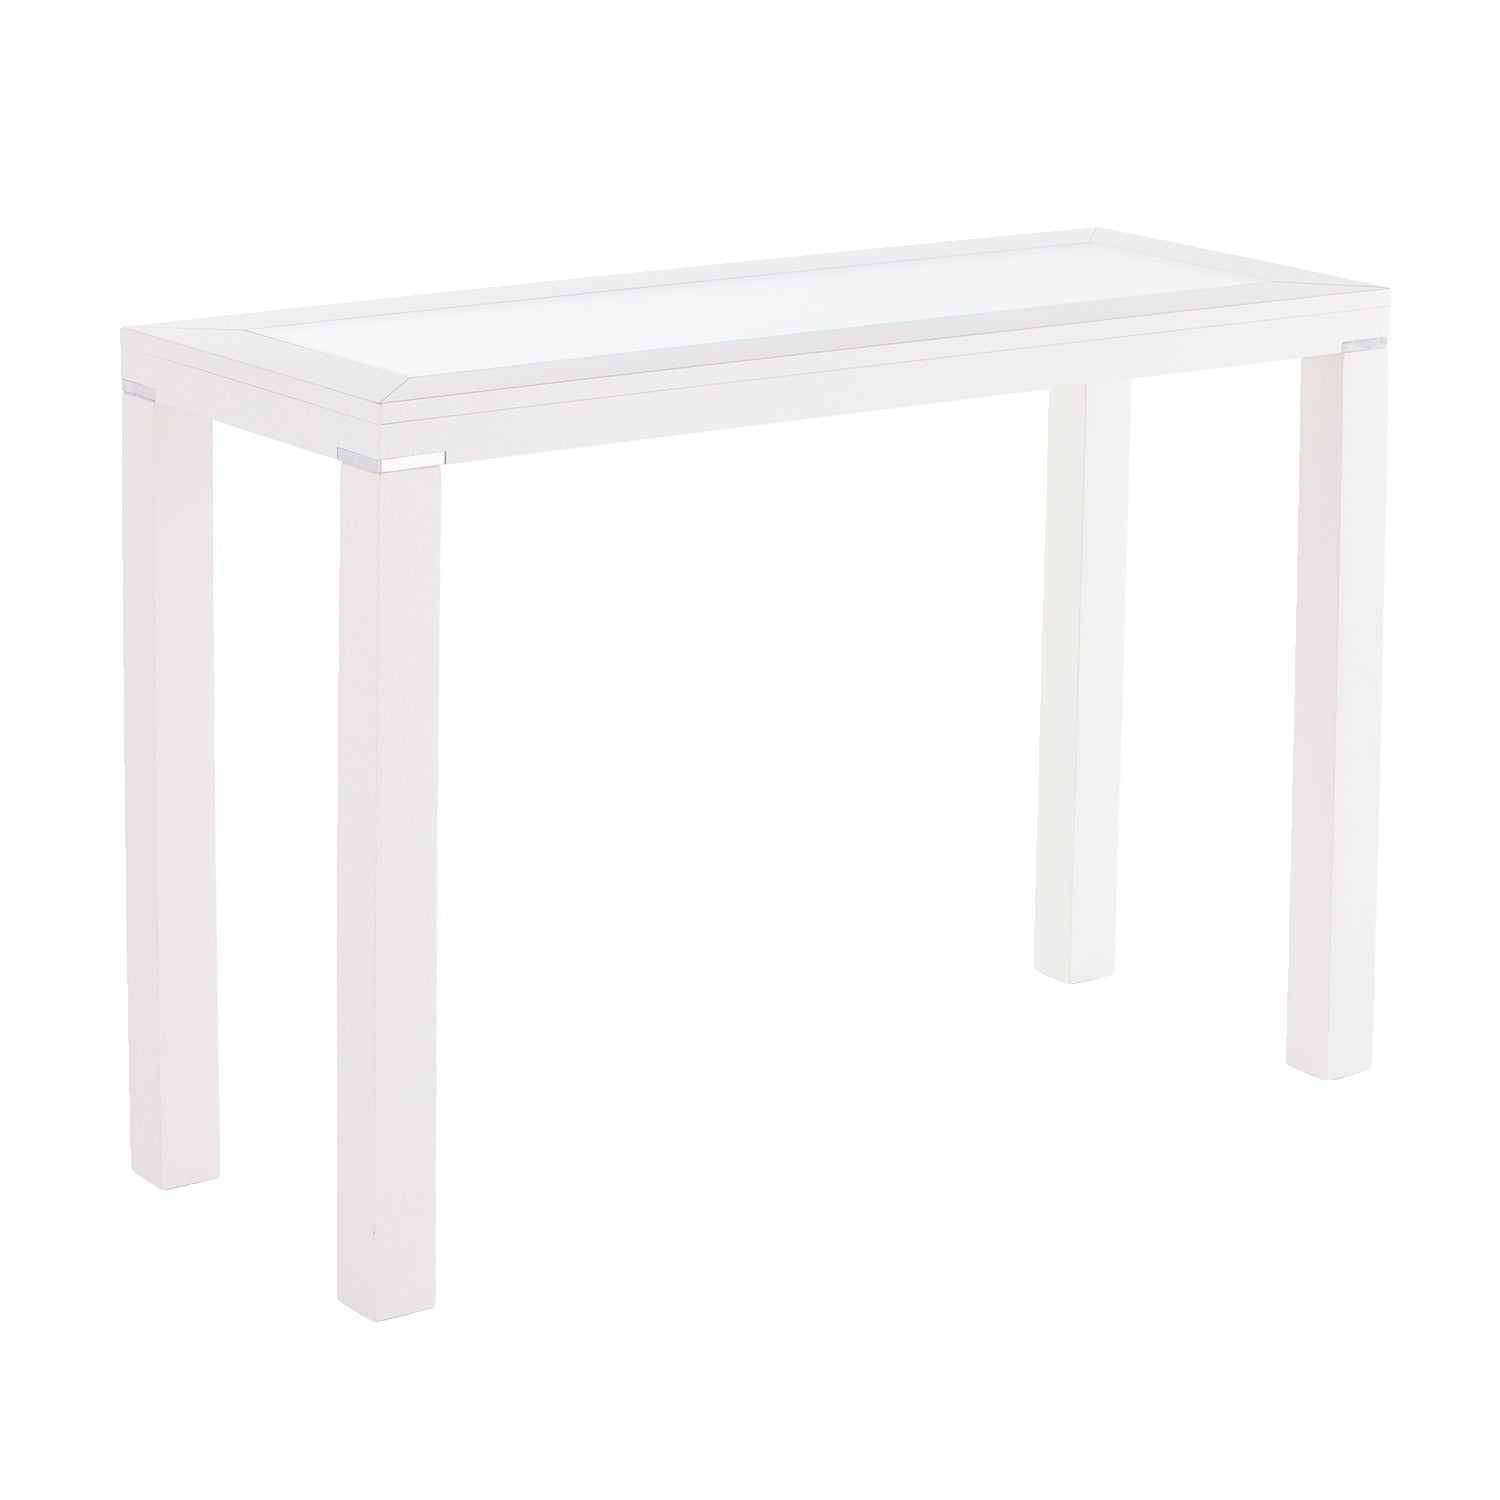 Den Lapham White Parsons Console Table